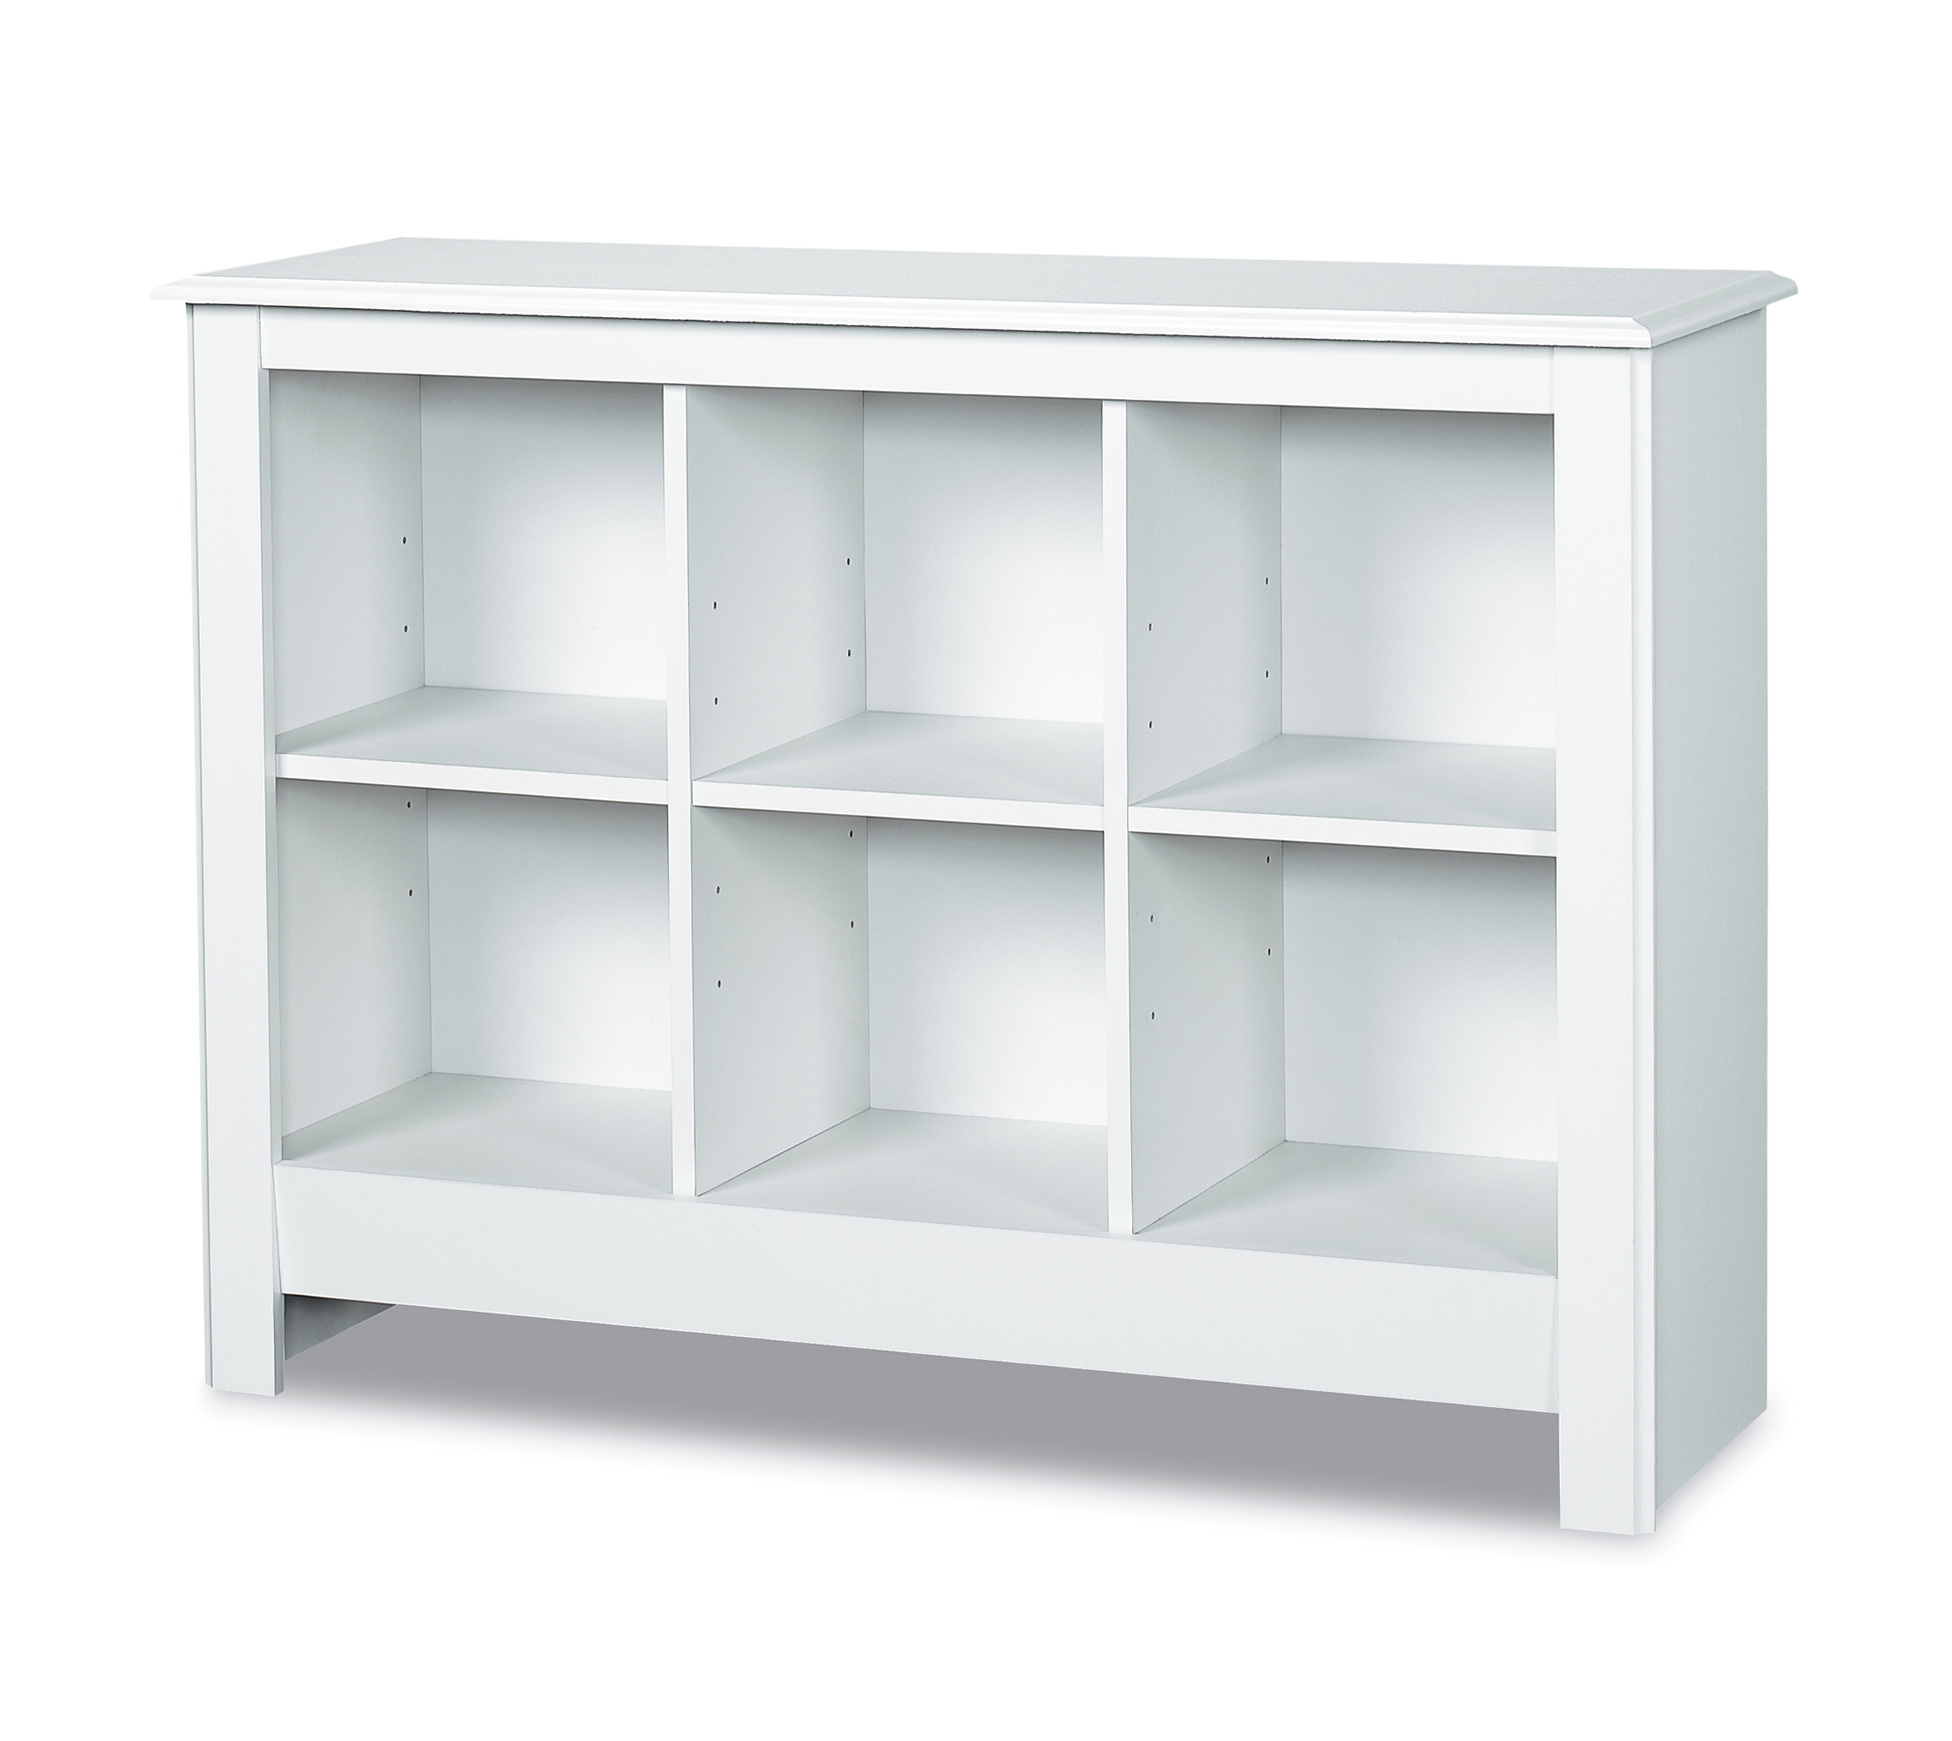 Walmart Wire Shelves | Walmart Book Shelves | Walmart Shelving